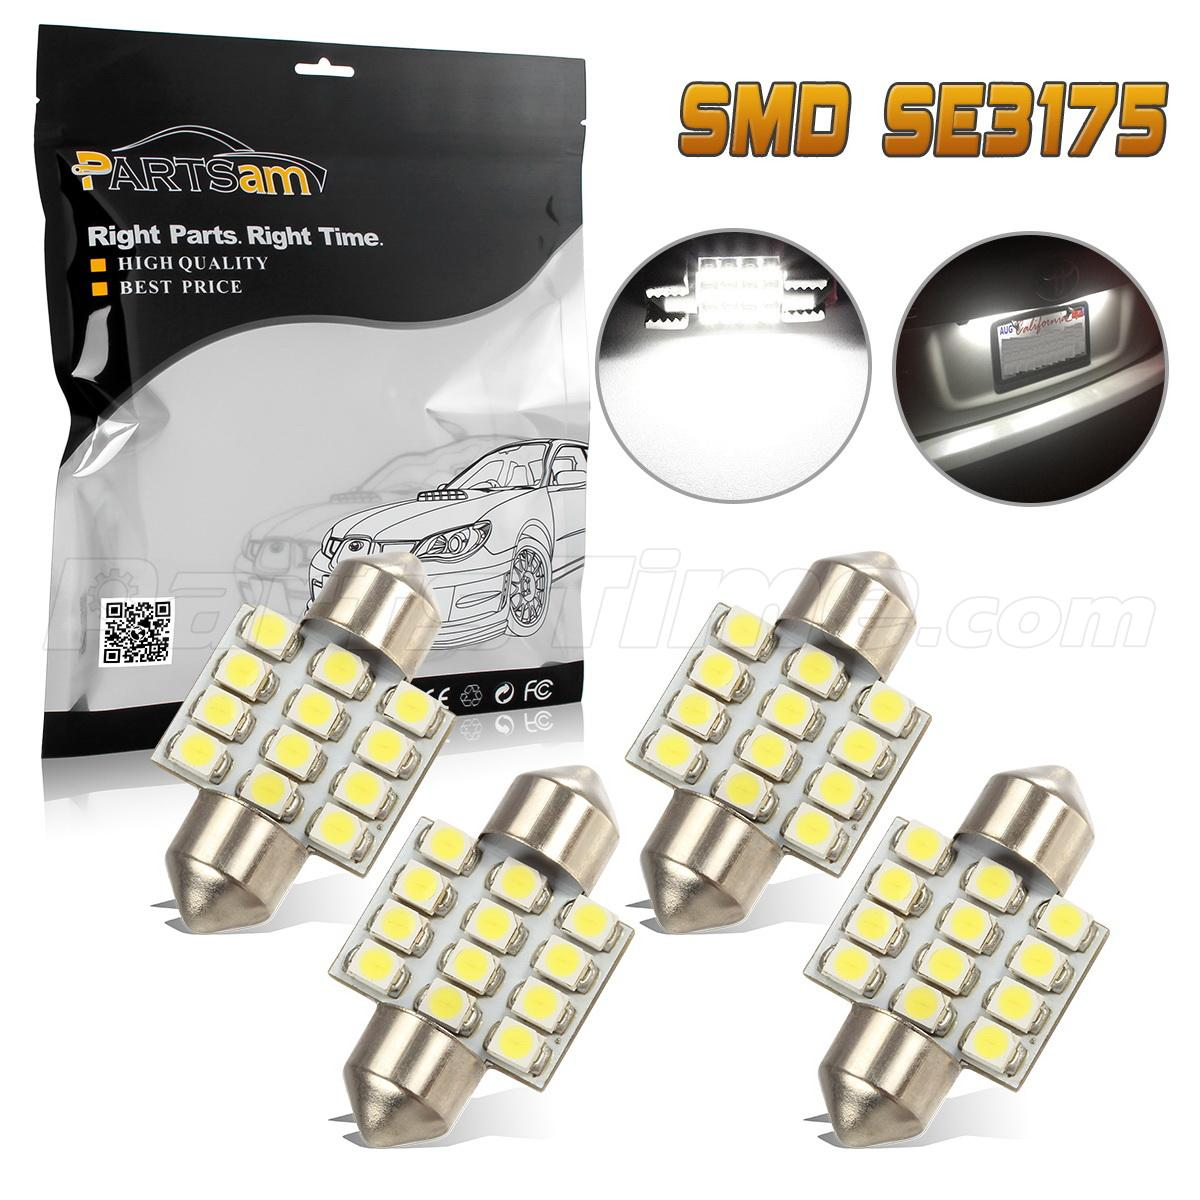 4x white 12smd de3175 led bulbs for car interior dome map lights 12v ebay. Black Bedroom Furniture Sets. Home Design Ideas